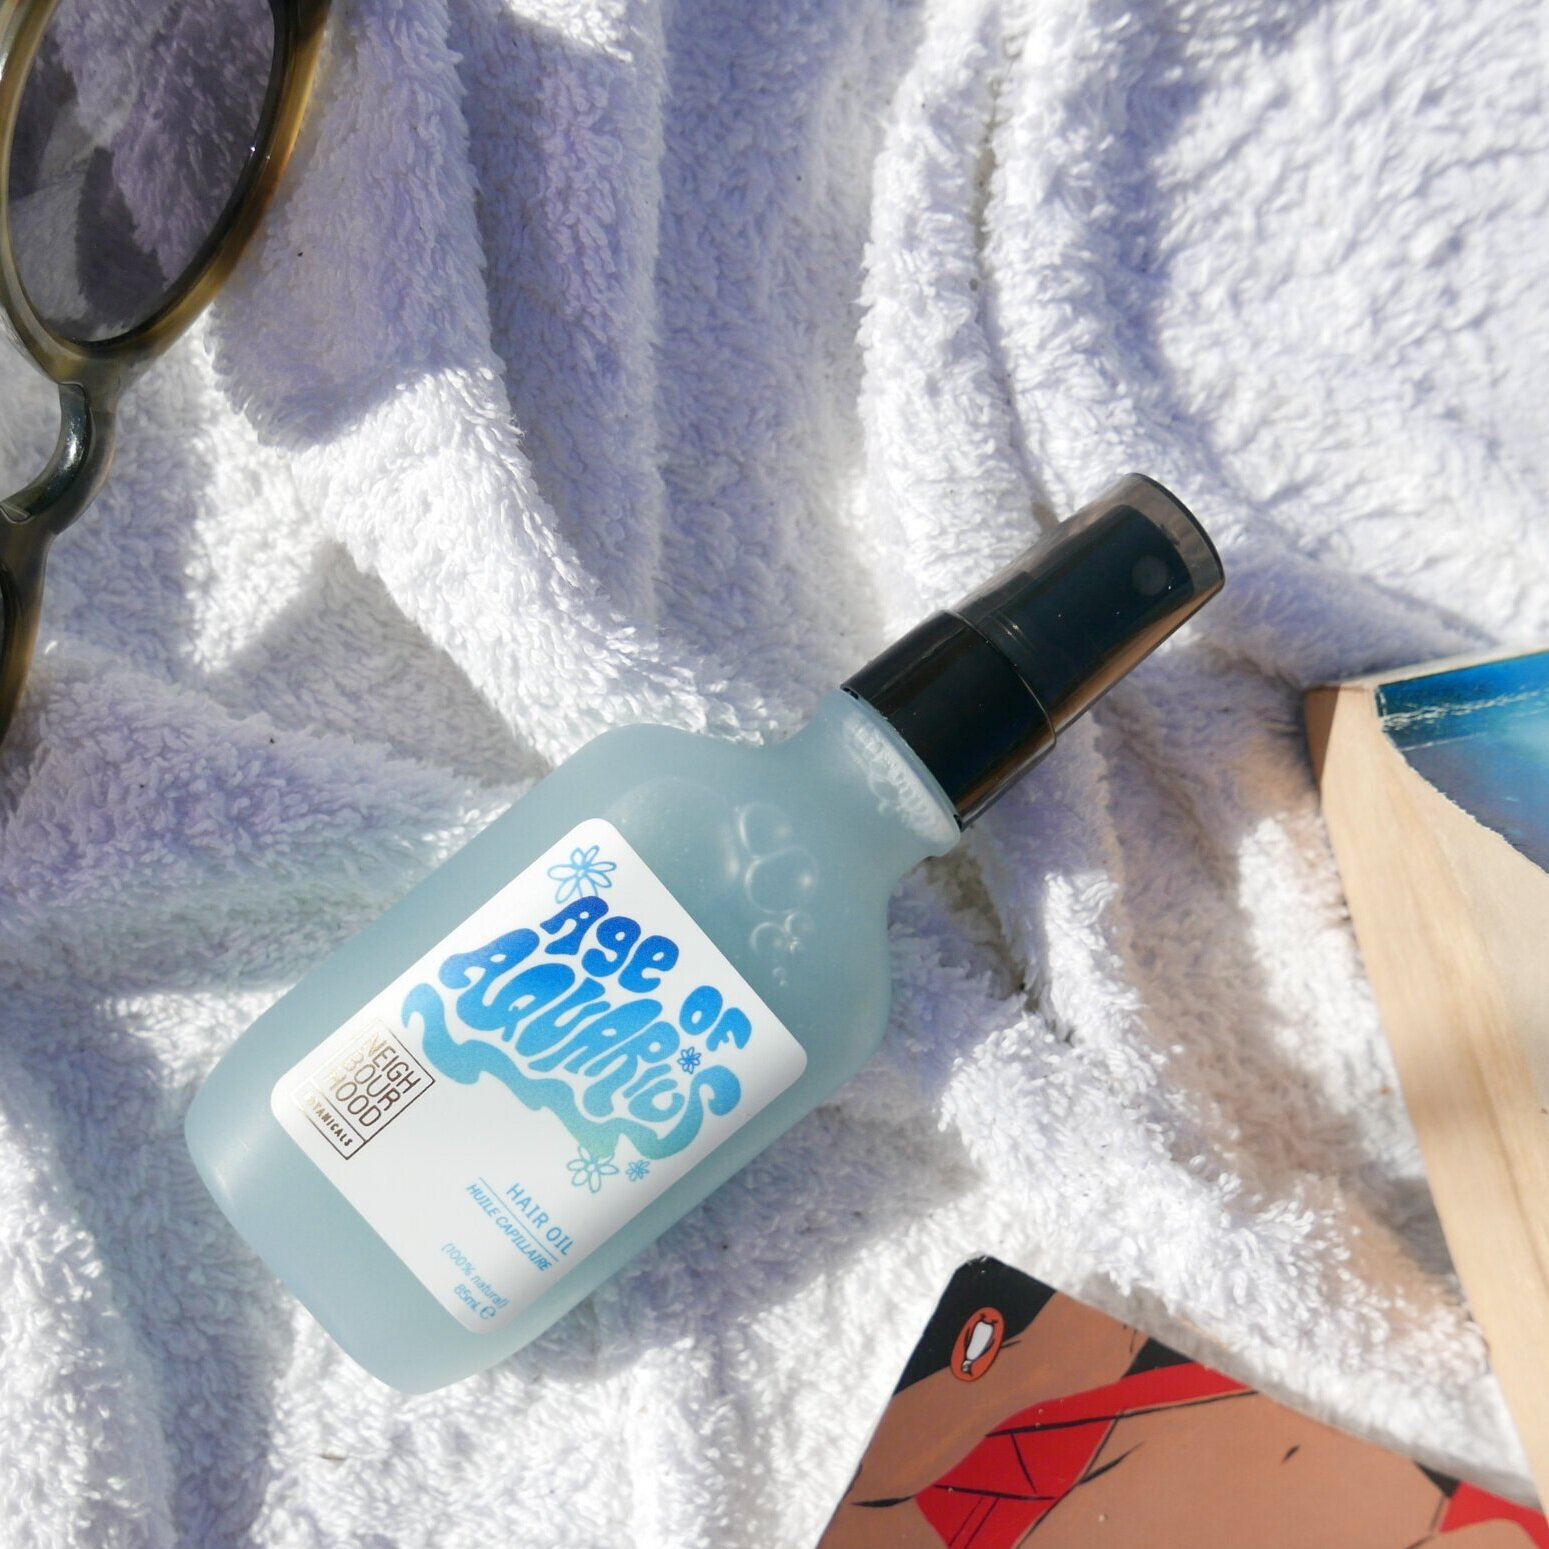 Age Of Aquarius Hair Oil - Ideal for thirsty locks. Let your hair down and the sunshine in <3